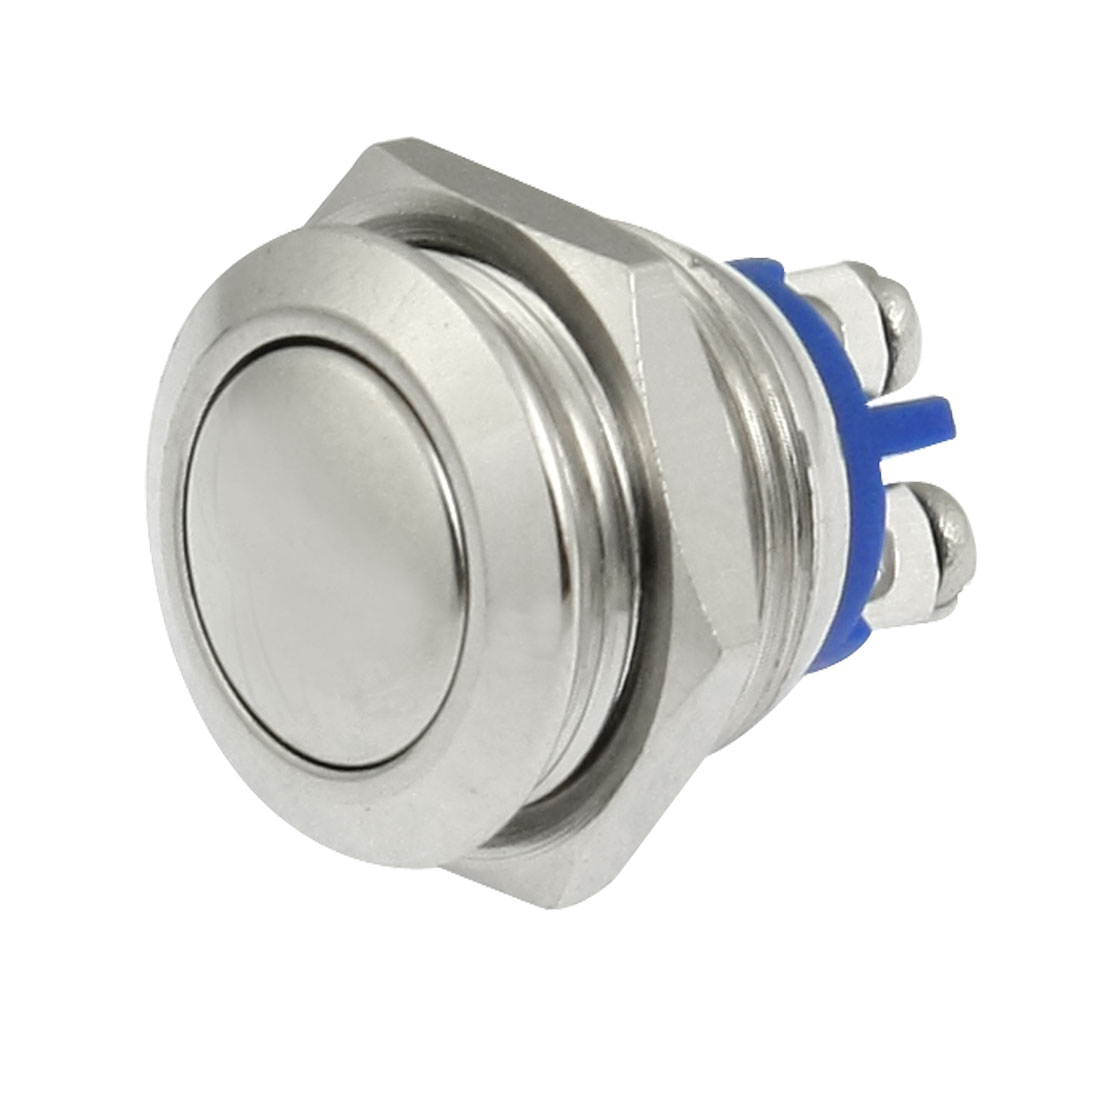 OFF-(ON) N/O NO 16mm Metal Round Mometary Dome Push Button Switch 3A 250V AC